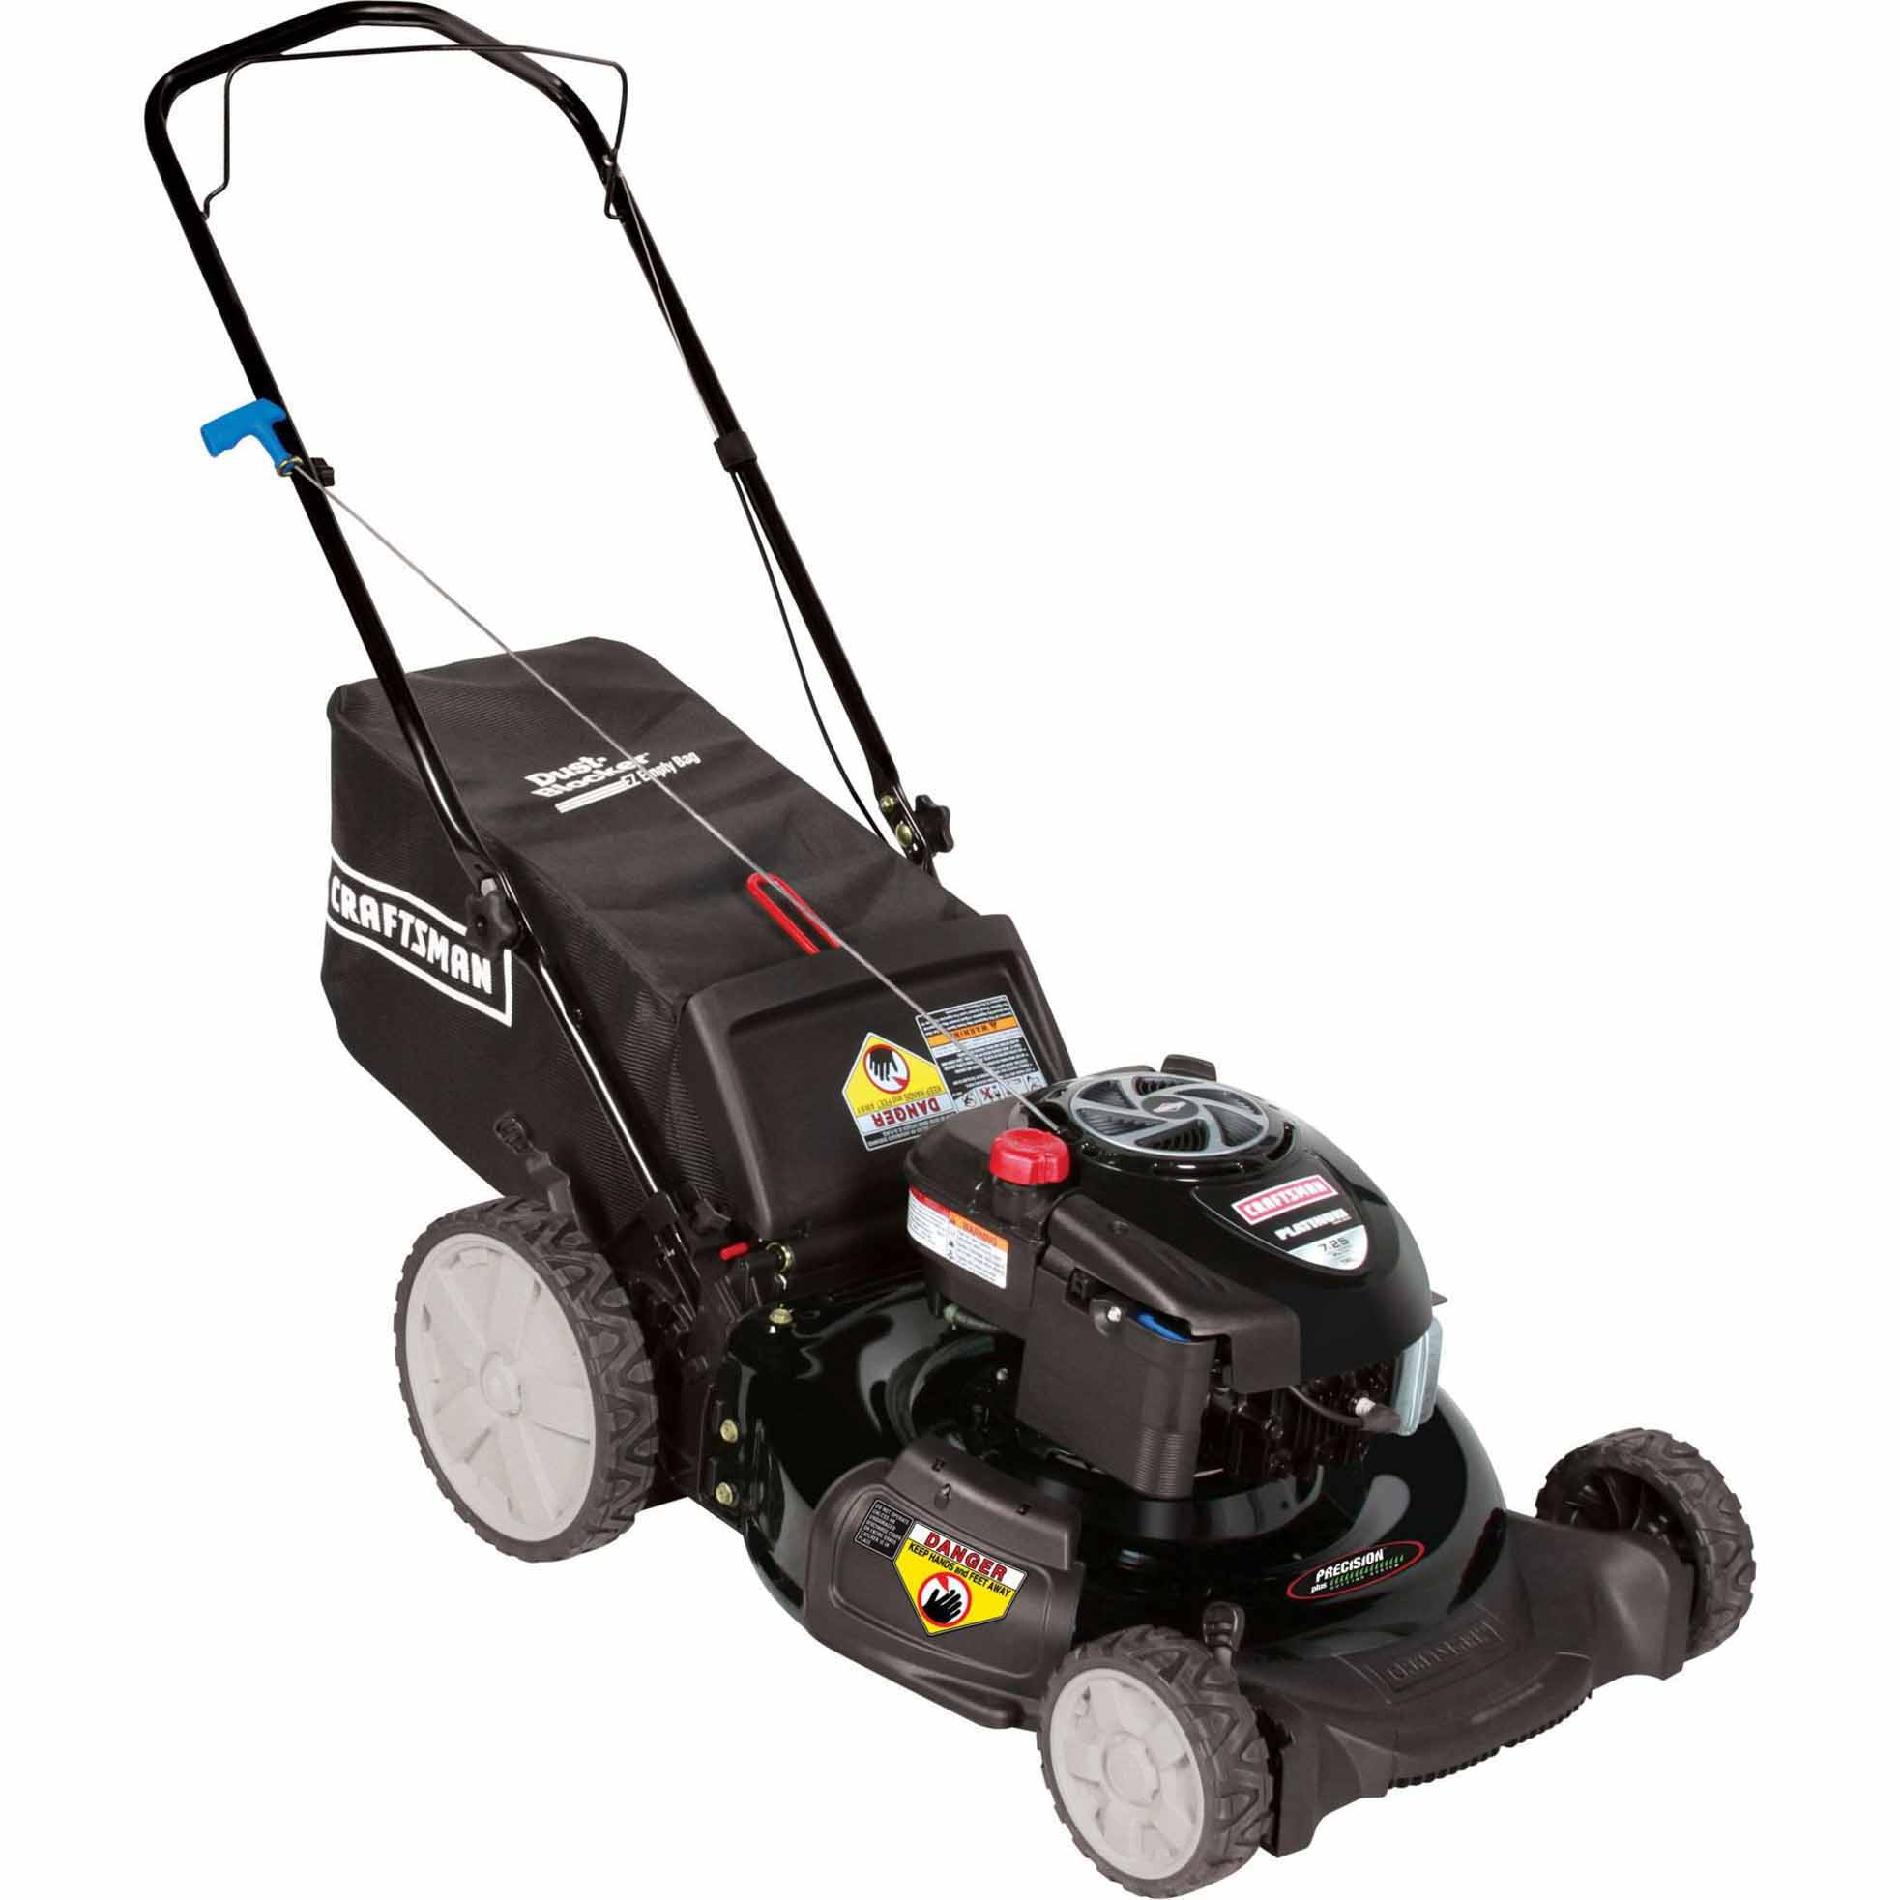 Craftsman 190cc* Briggs & Stratton Engine, High Wheel Rear Bag Push Mower